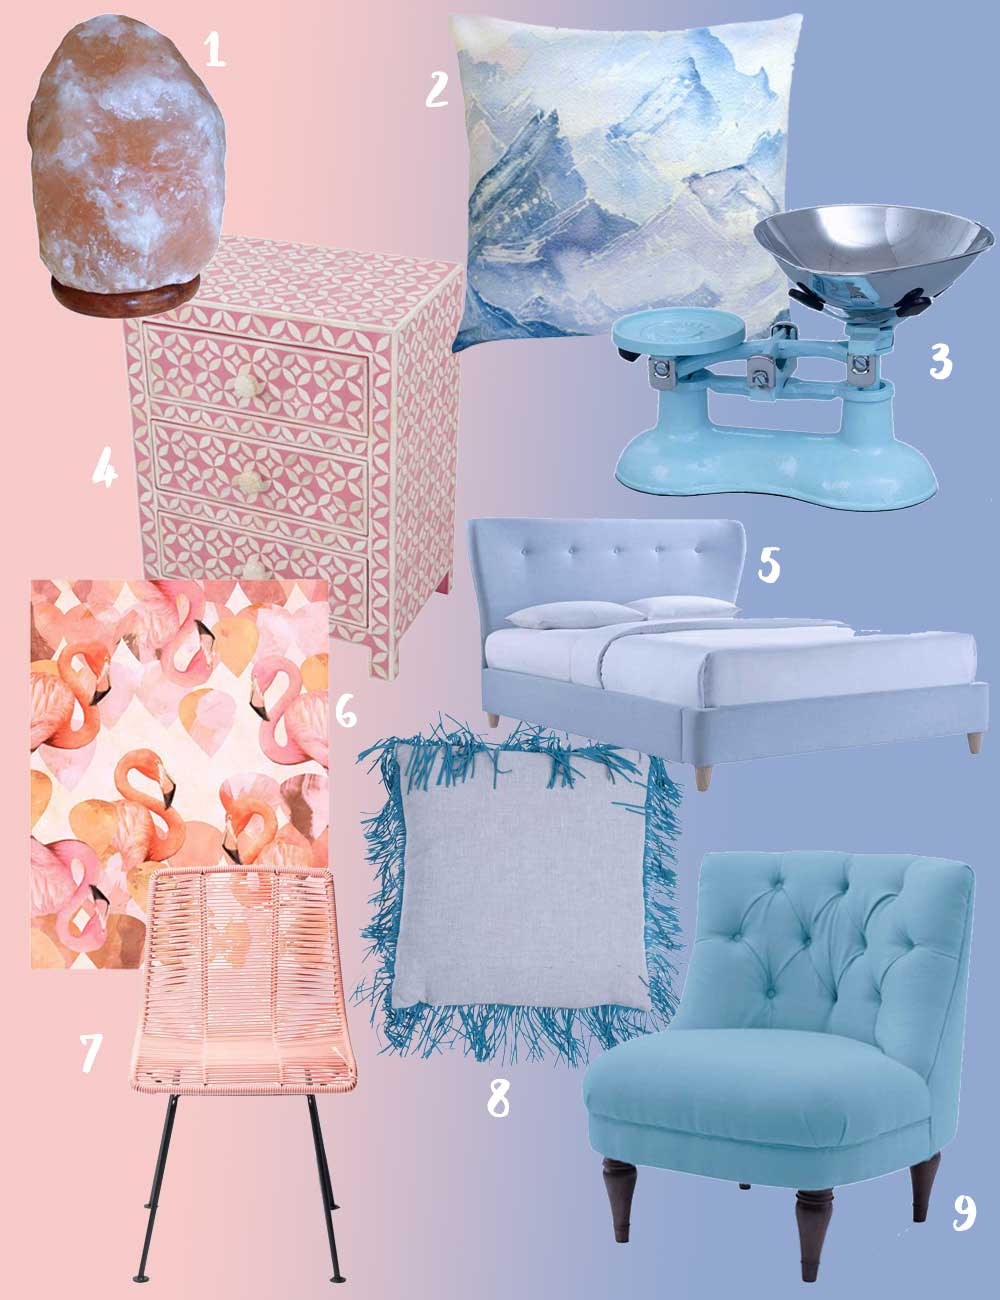 Pantone Colour of the Year 2016 - Rose Quartz & Serenity - Get The Look - Hutsly